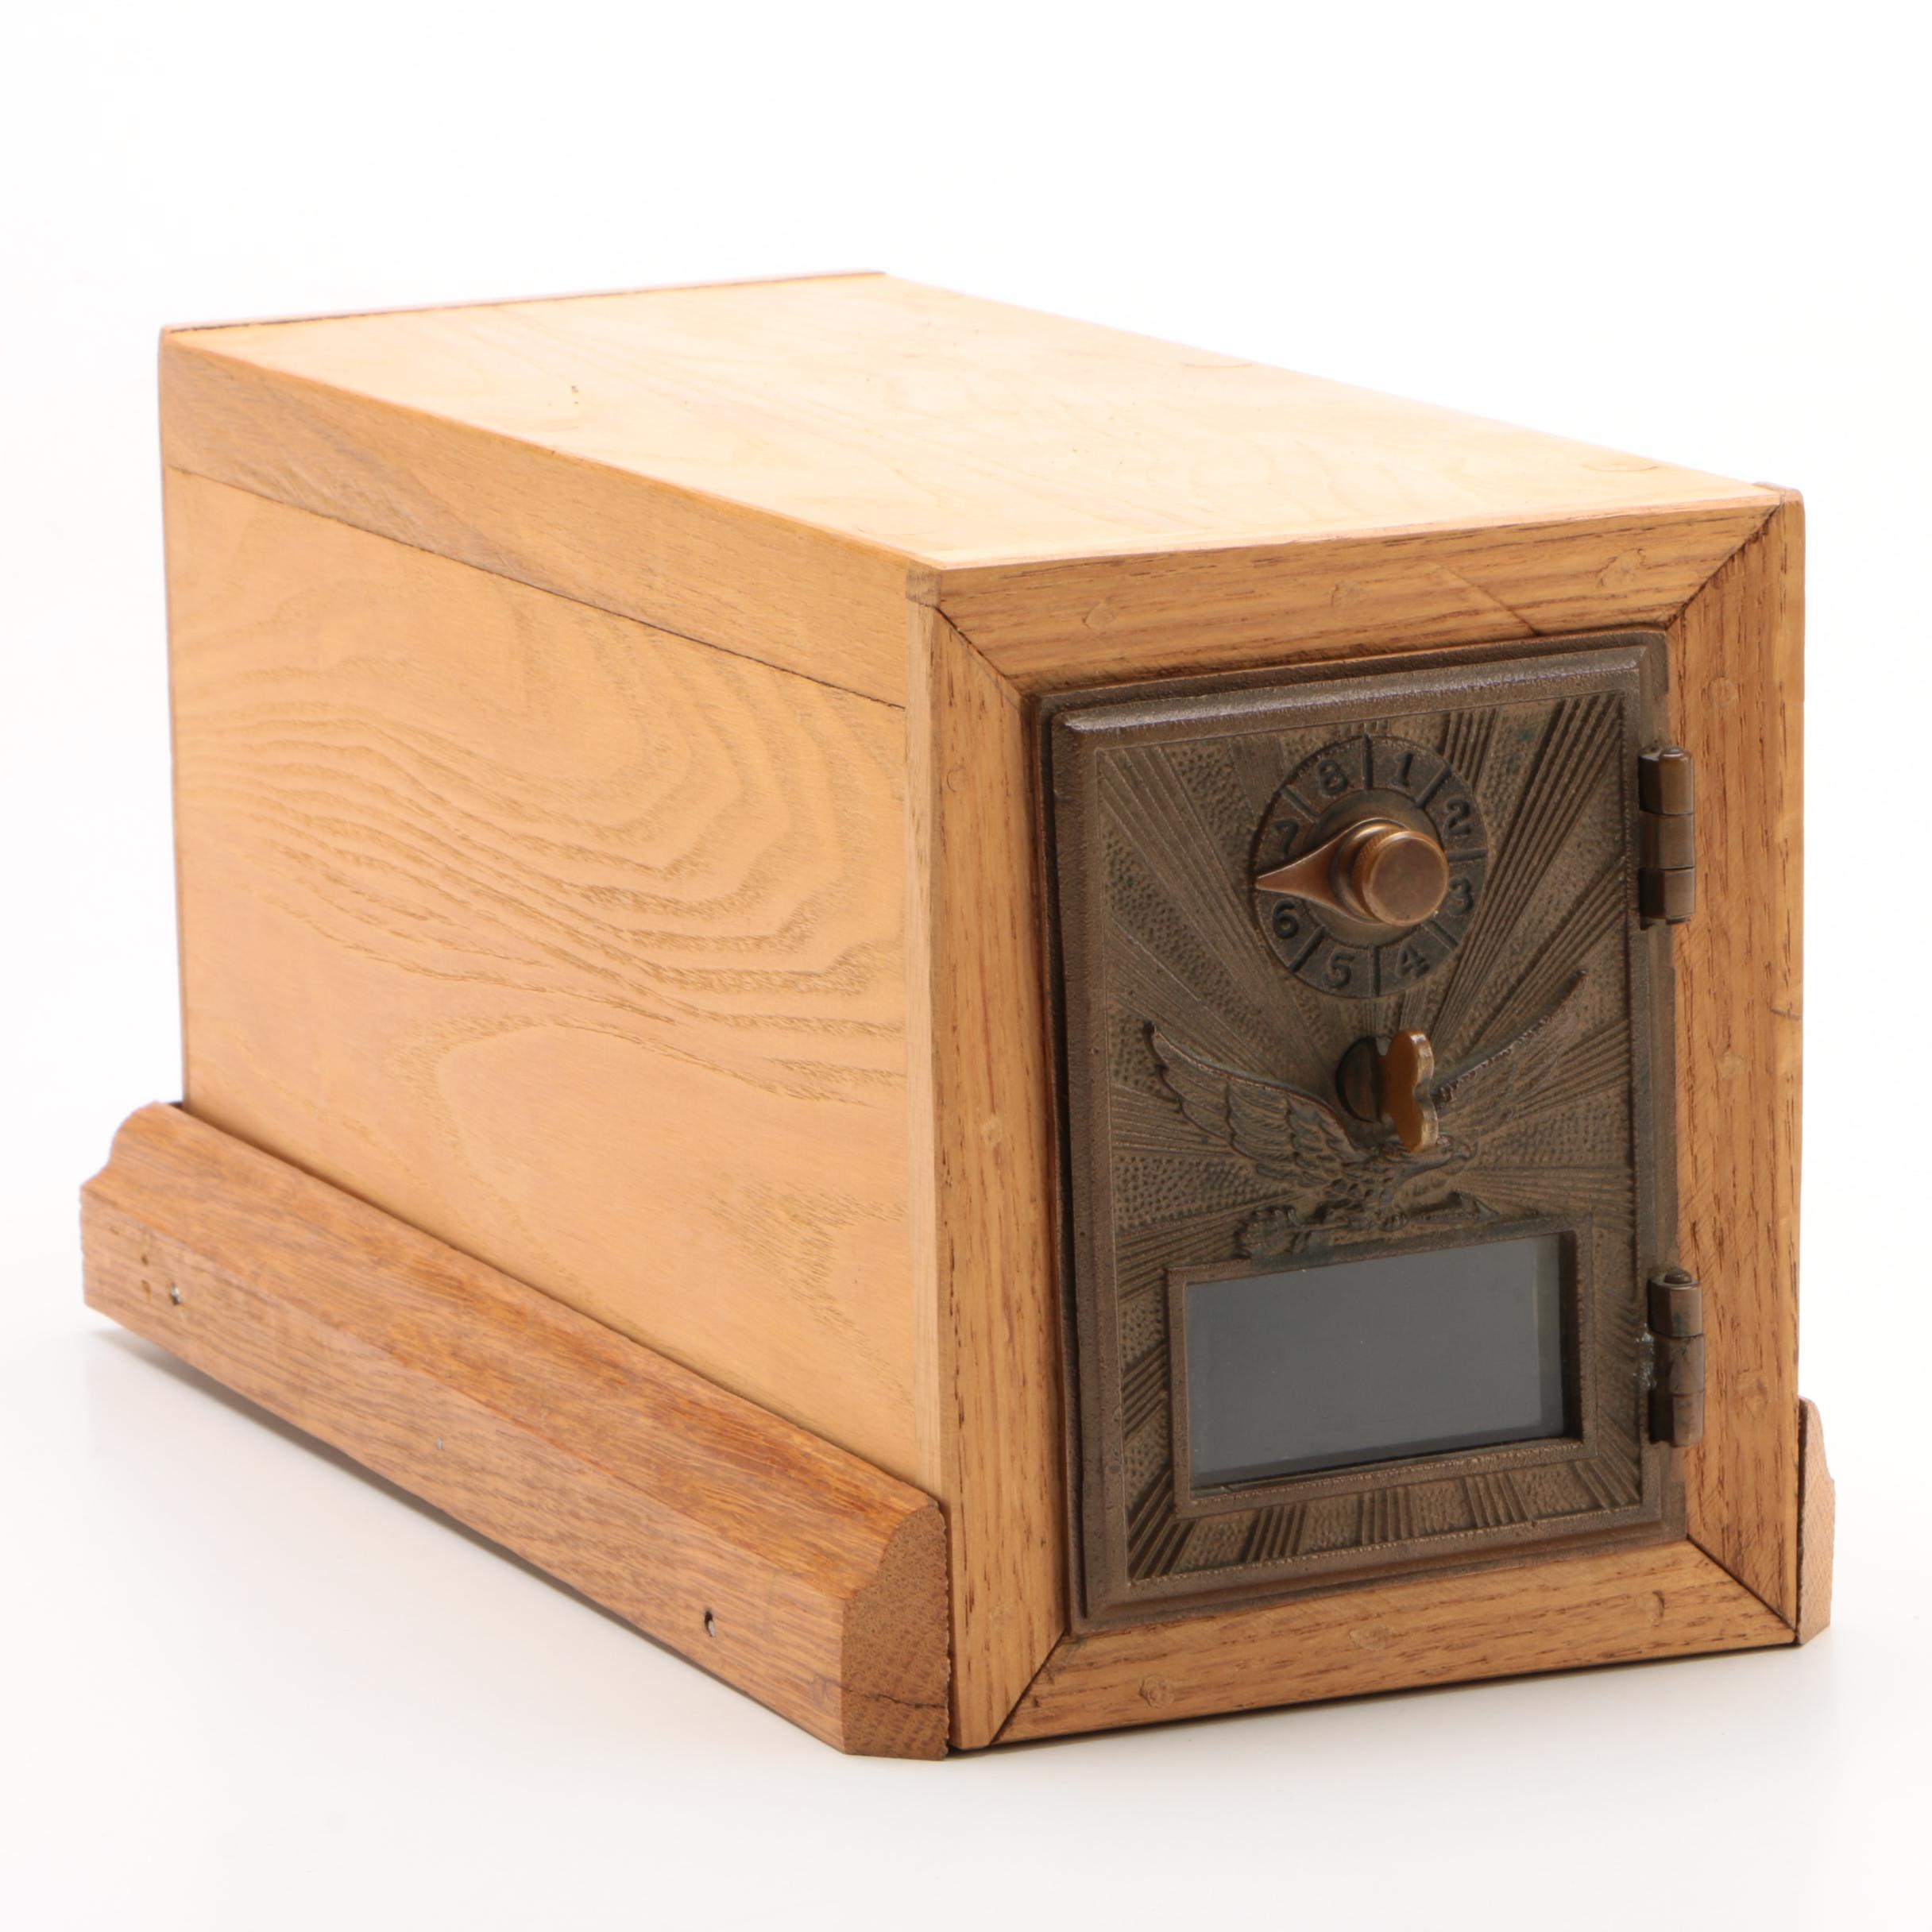 U.S. Post Office Box Door with Custom-Made Oak Case, Early 20th Century & Later